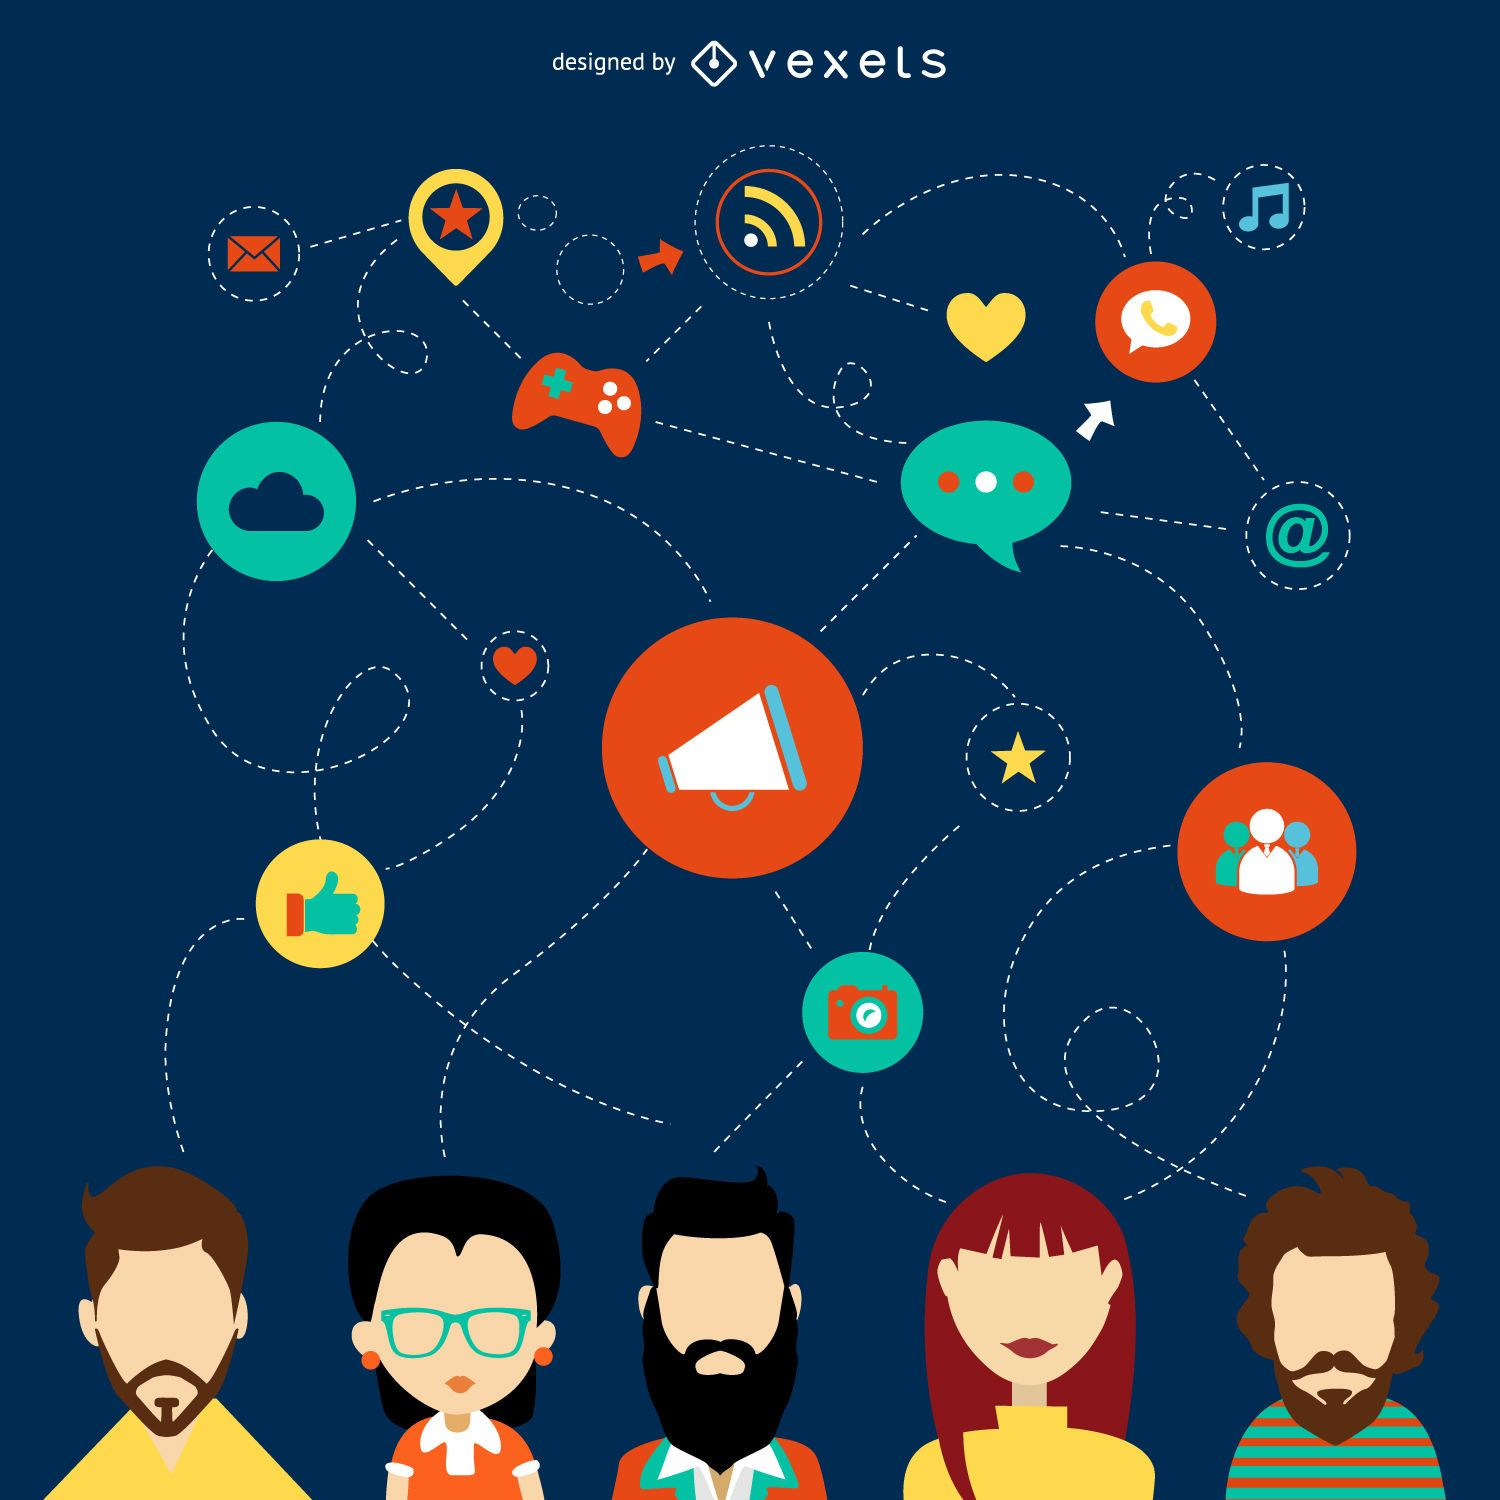 03a76799059c790cd8396ea1f116484a-flat-social-network-illustration.jpg